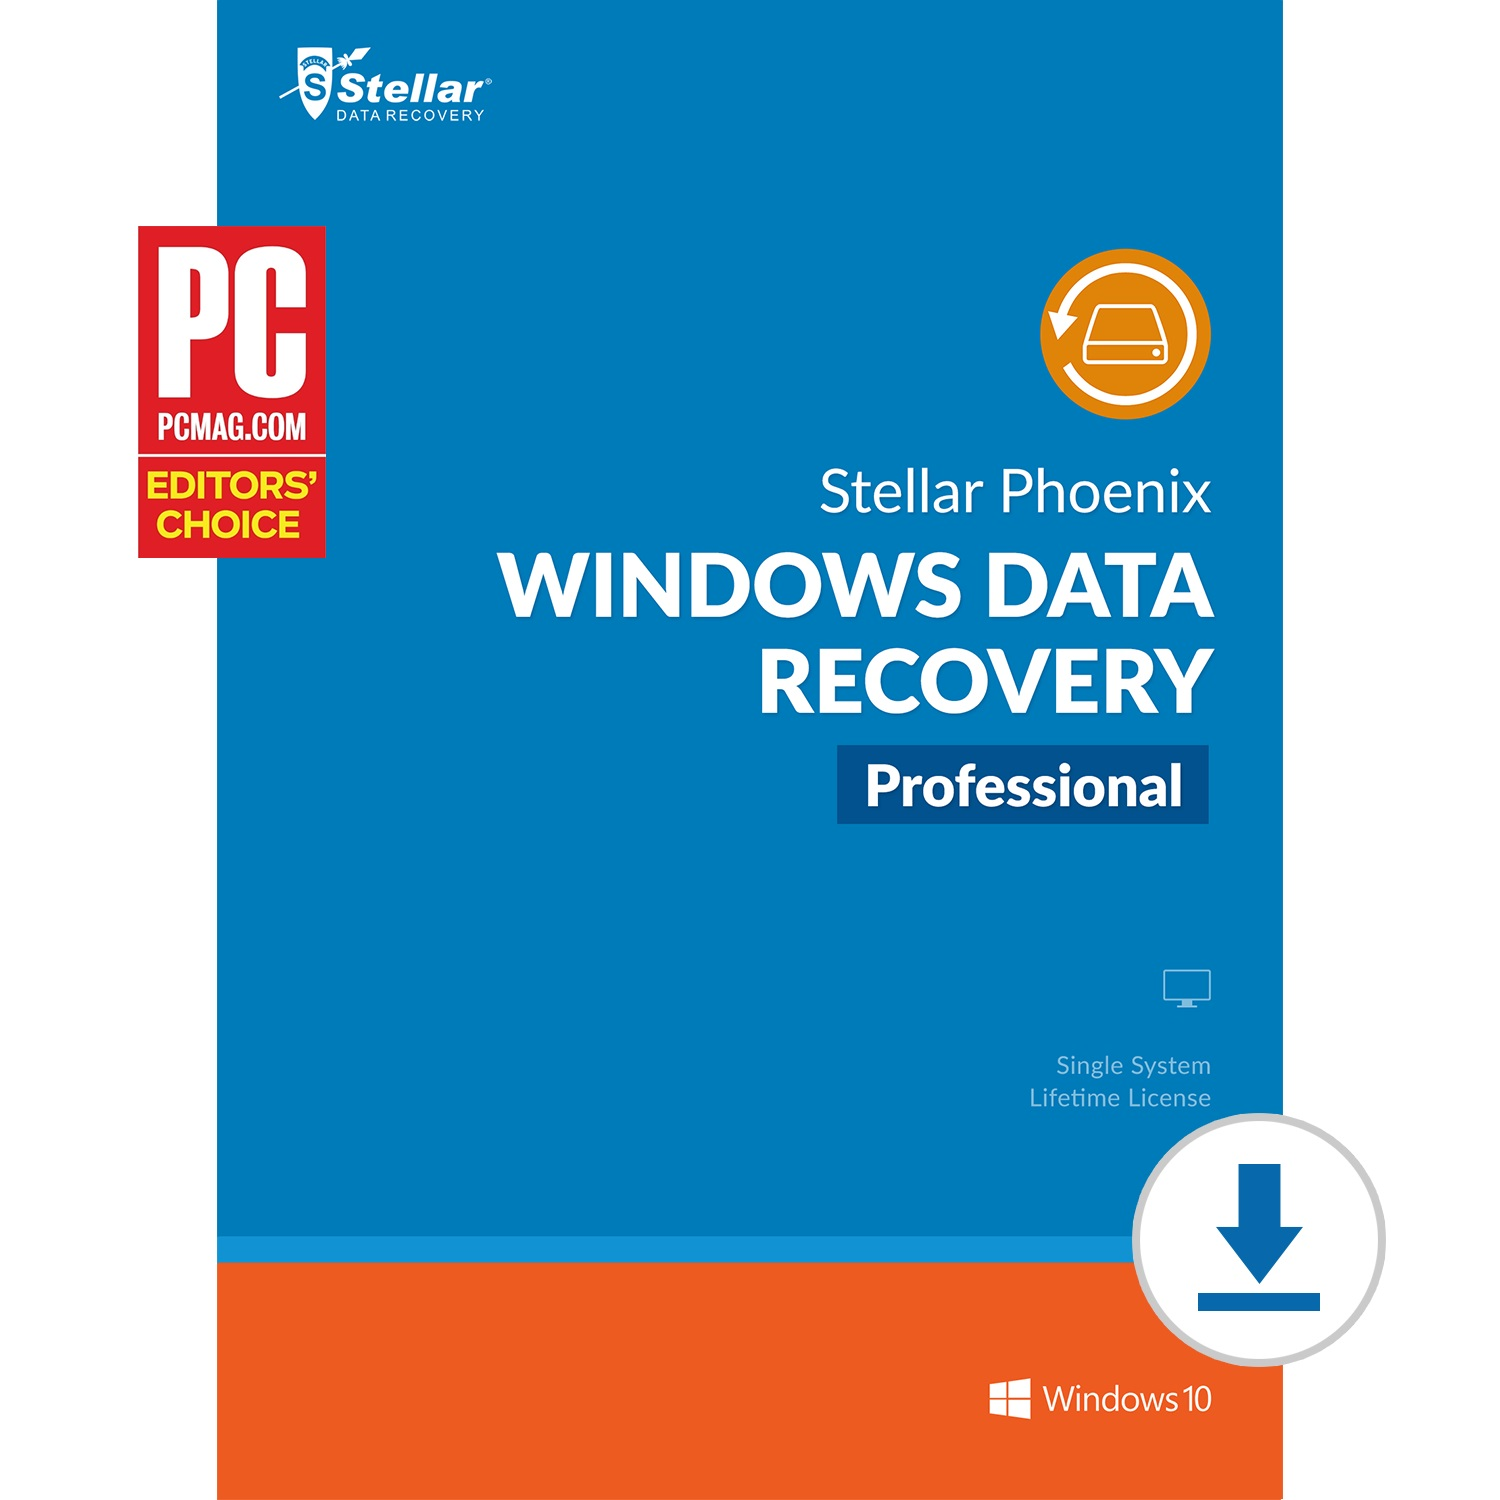 Stellar Data Recovery Software | for Windows | Professional | Recovers Data, Photos, Videos, Email & Dvd | 1 Device, 1 Yr Subscription | Instant Download (Email Delivery)